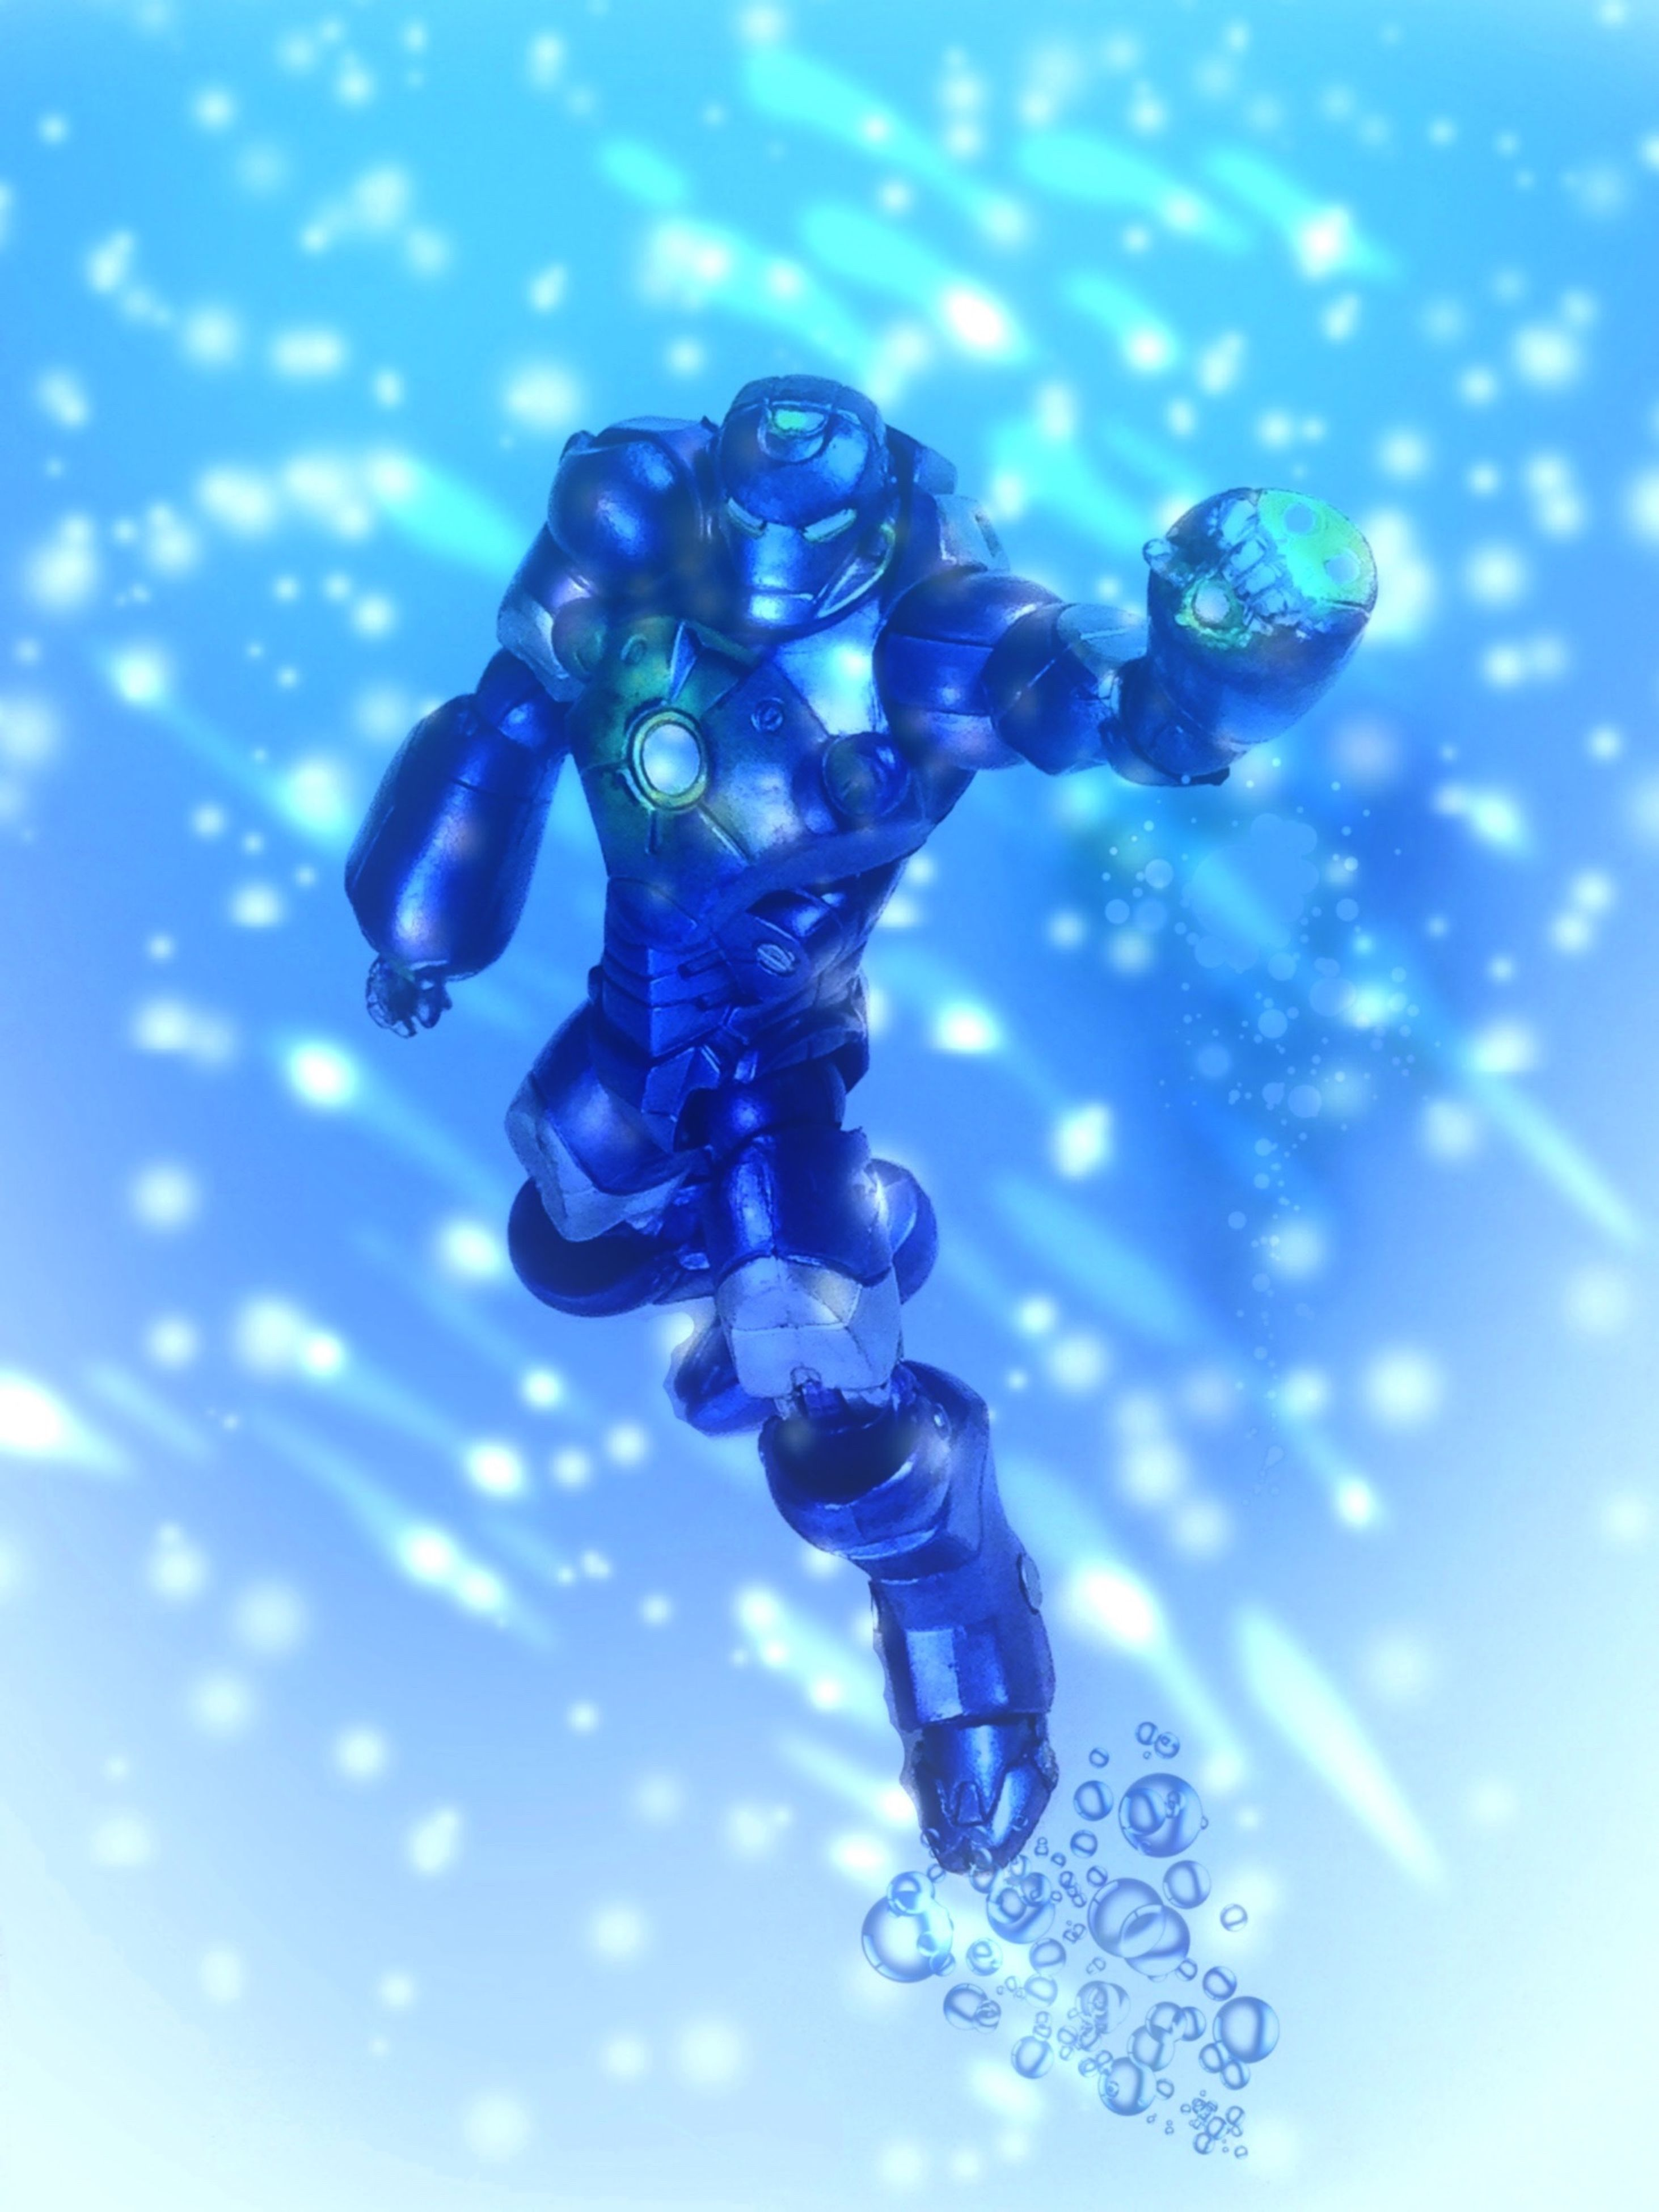 blue, water, close-up, focus on foreground, drop, day, wet, reflection, outdoors, no people, bubble, human representation, low angle view, splashing, nature, art and craft, sculpture, sky, transparent, selective focus